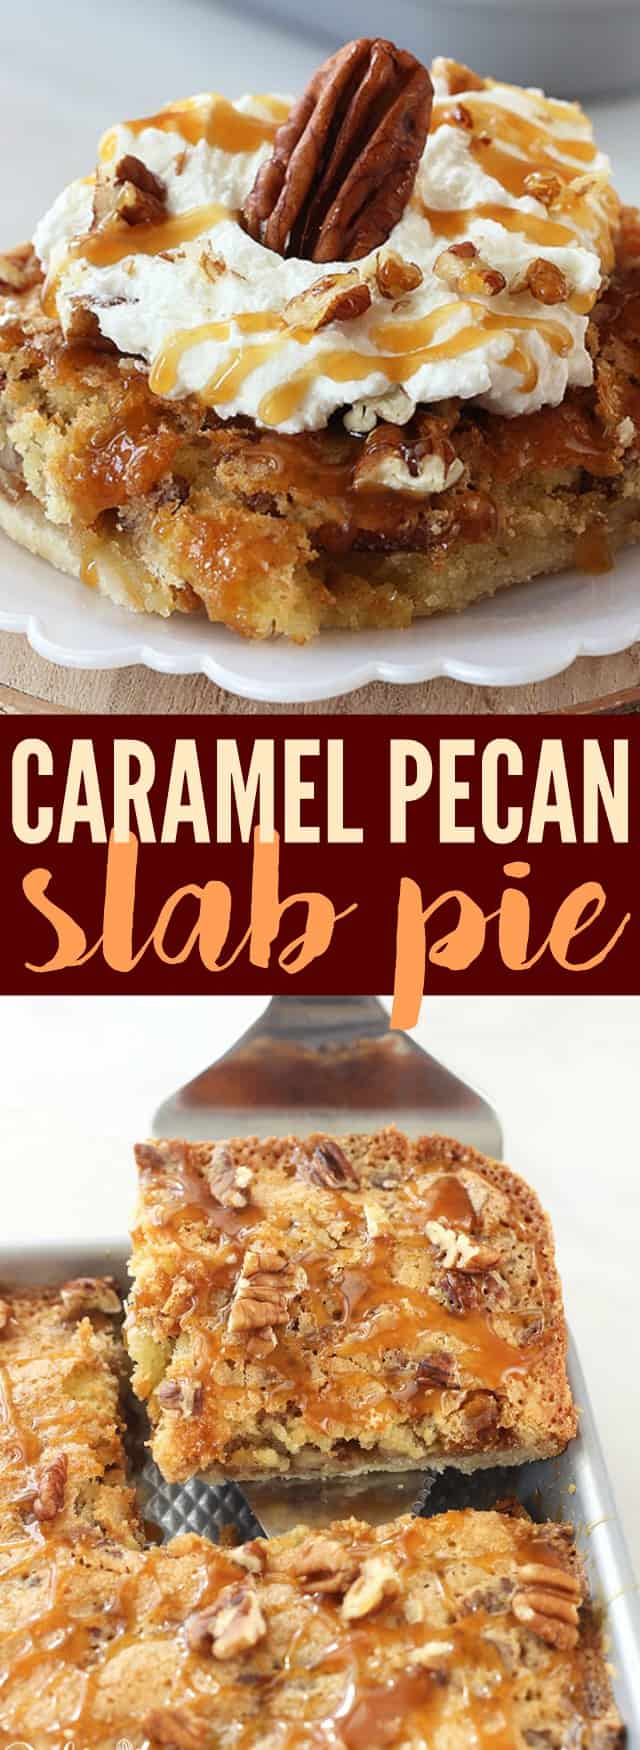 This Caramel Pecan Slab Pie is the perfect dessert for the holidays! A buttery crust is topped with crunchy pecans and a sweet caramel filling, then baked on a sheet pan. Cut into slices and top them with whipped cream and a drizzle of caramel for a truly decadent dessert!